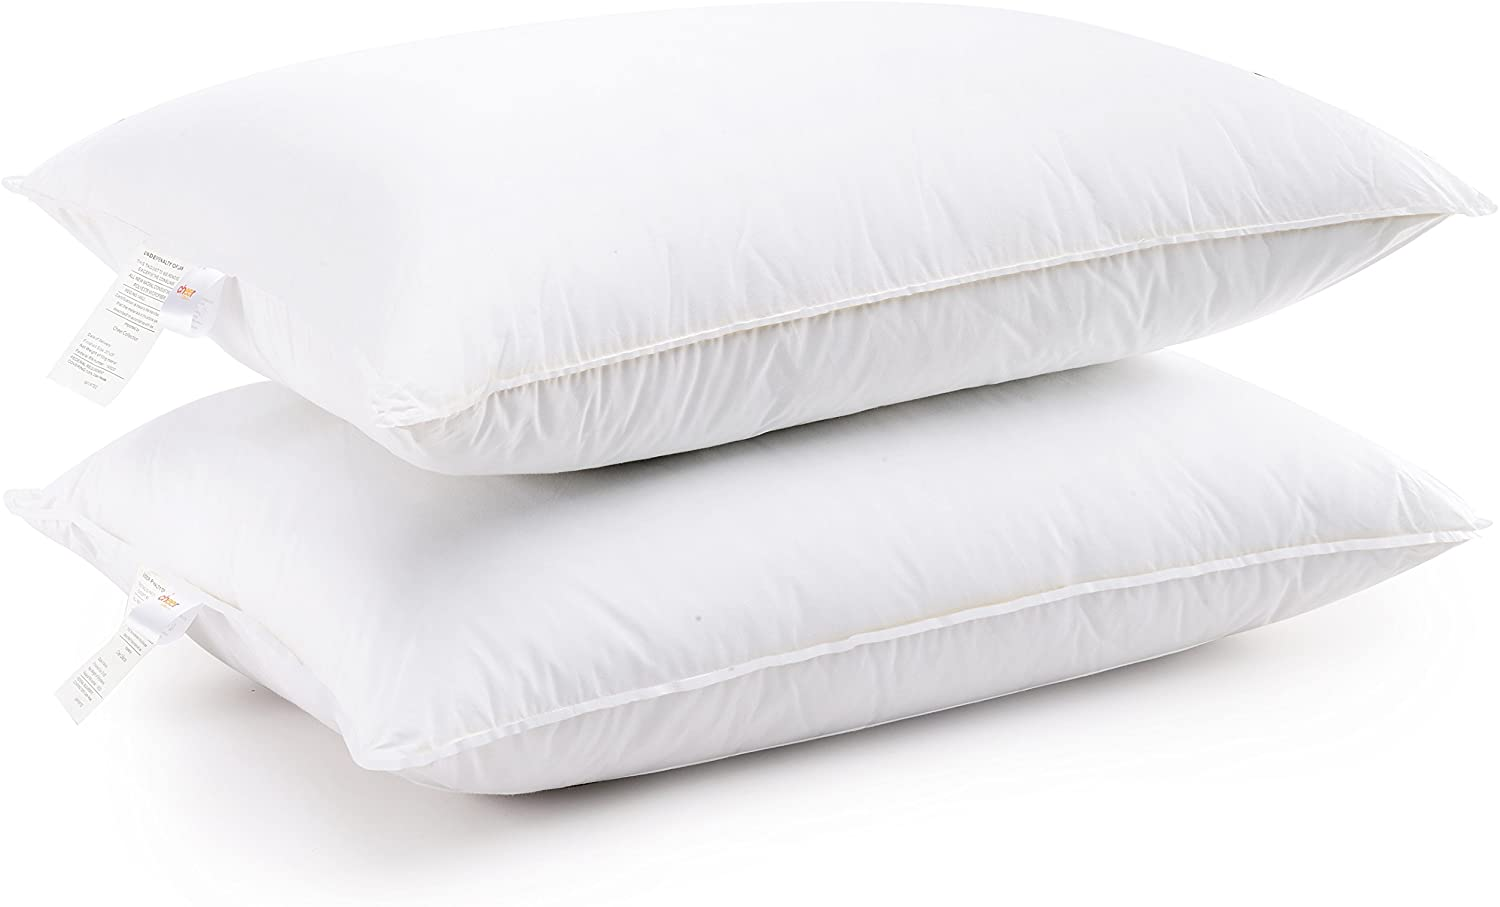 Cheer Collection King Size Sham Inserts - Comfortable Hollow Fiber 20 x 36 Bed Pillows, Set of 2